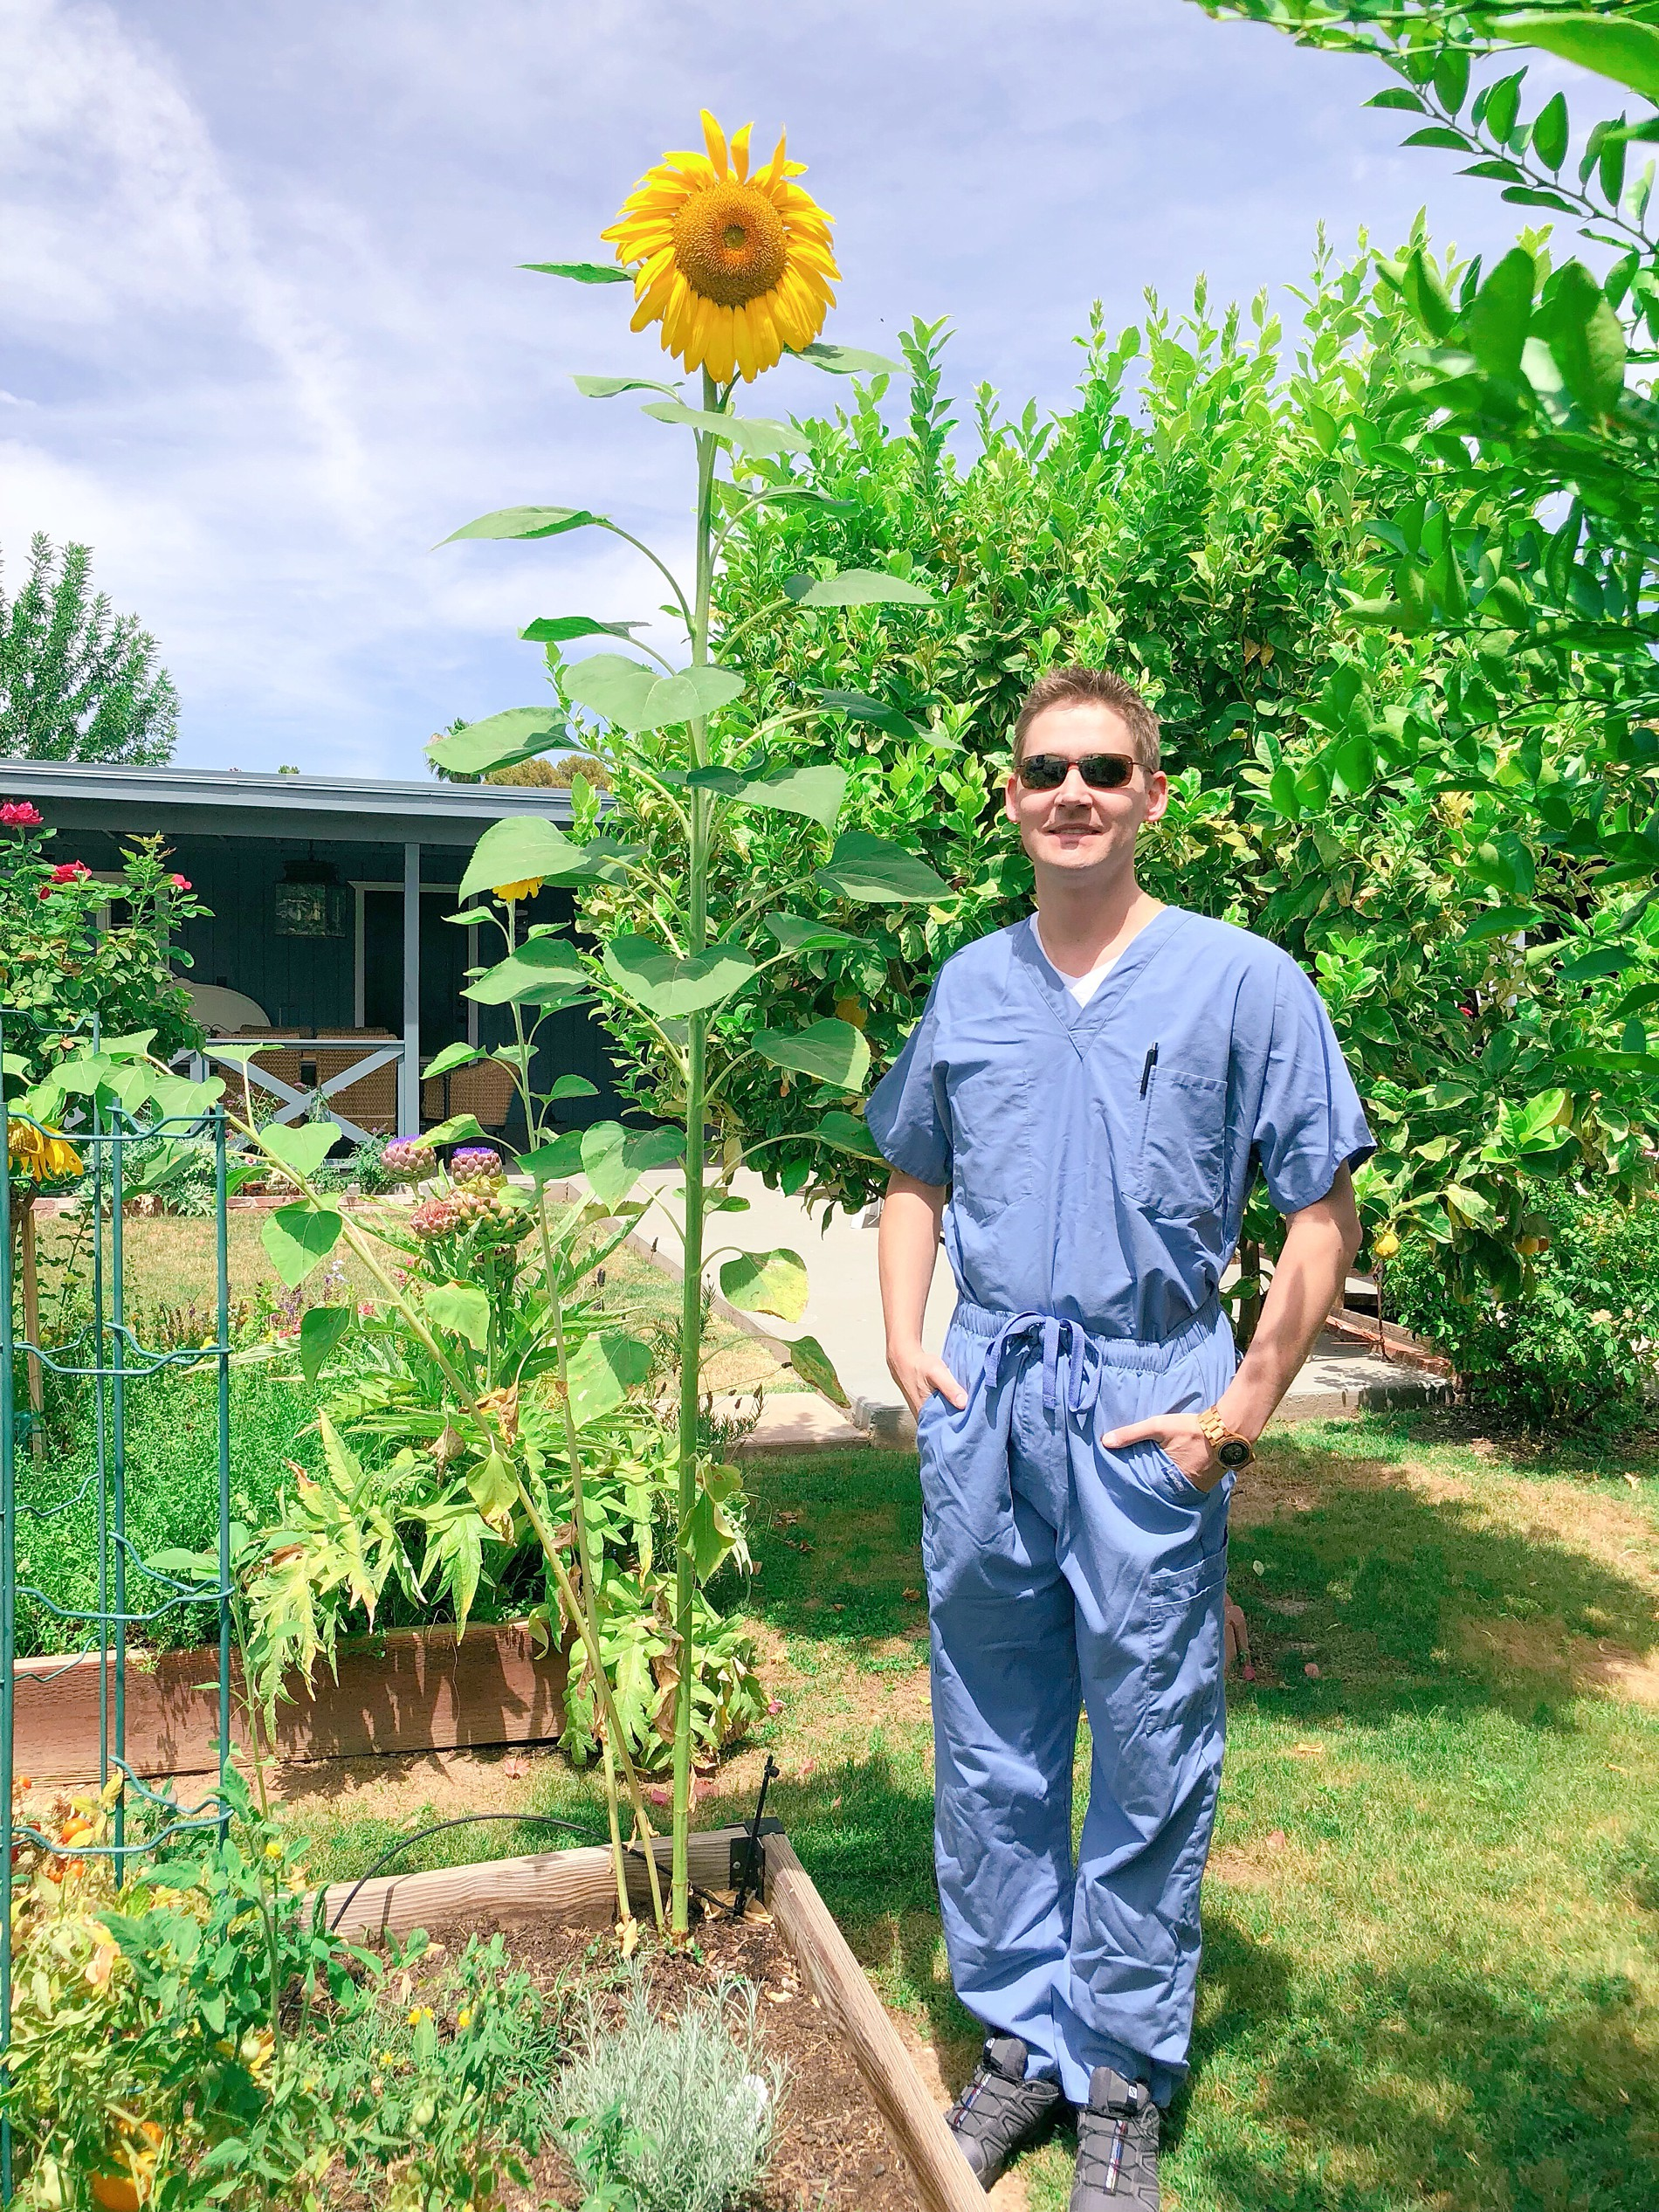 tallest sunflower planted!